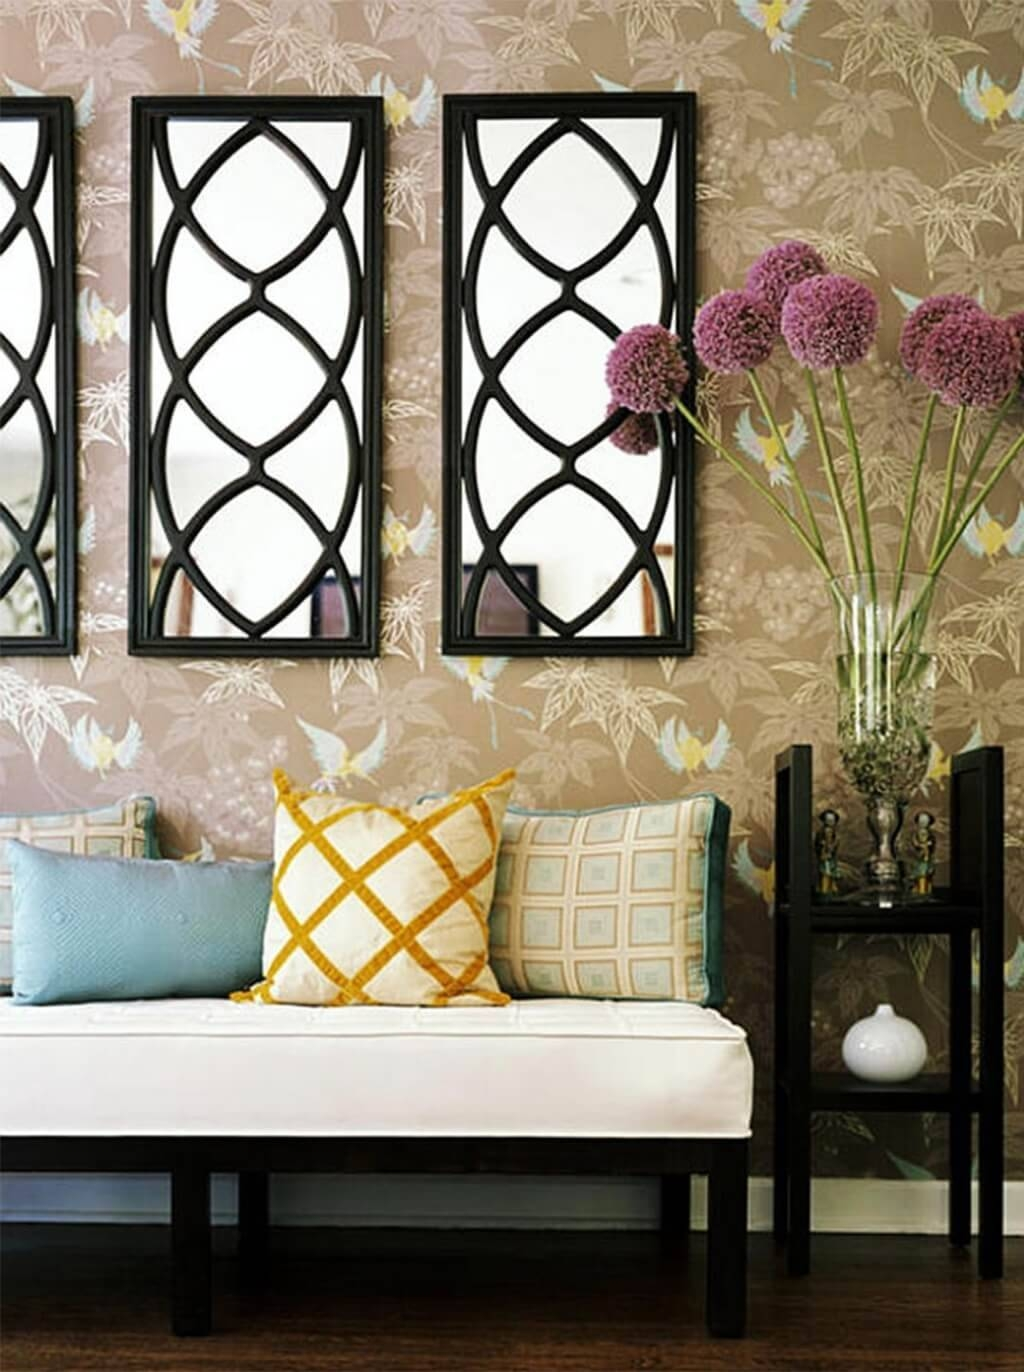 Perfect Decorative Wall Mirrors For Living Room | Jeffsbakery throughout Decorative Long Mirrors (Image 22 of 25)